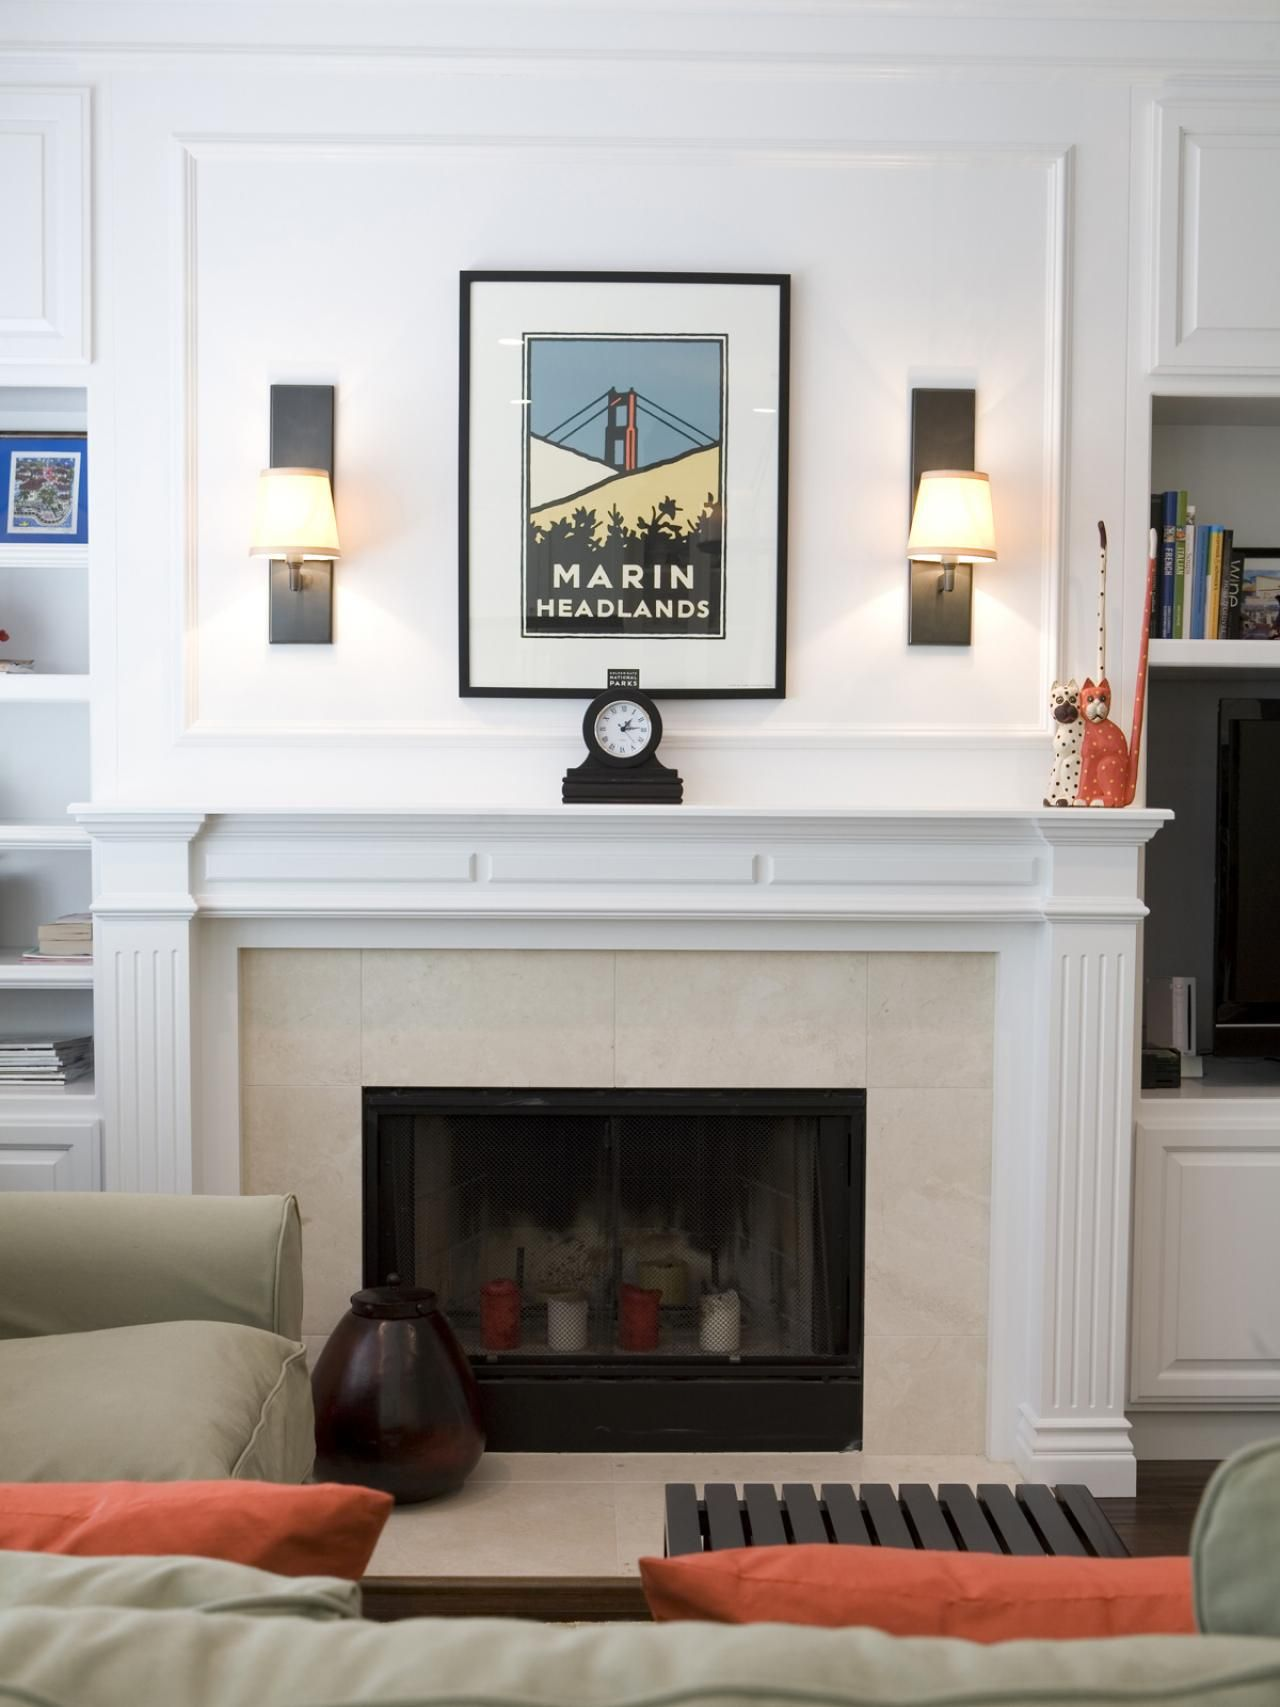 Living Room Fireplace Across From An Oversized Gray Plush Sofa Sits A White Marble The Mantel Of